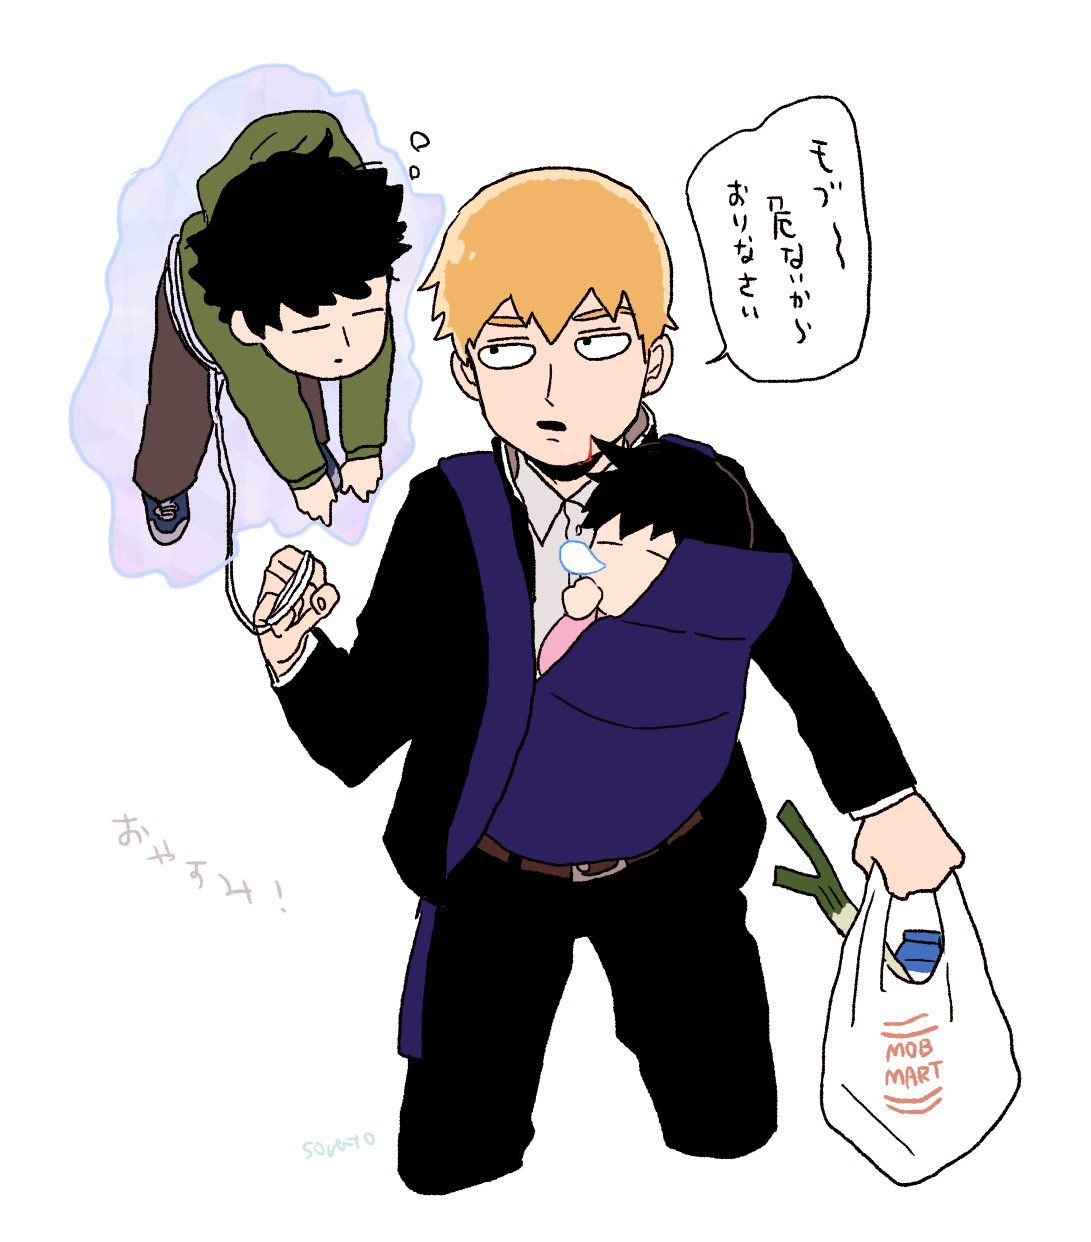 sorato on Twitter in 2020 Mob psycho 100, Mob psycho, Anime